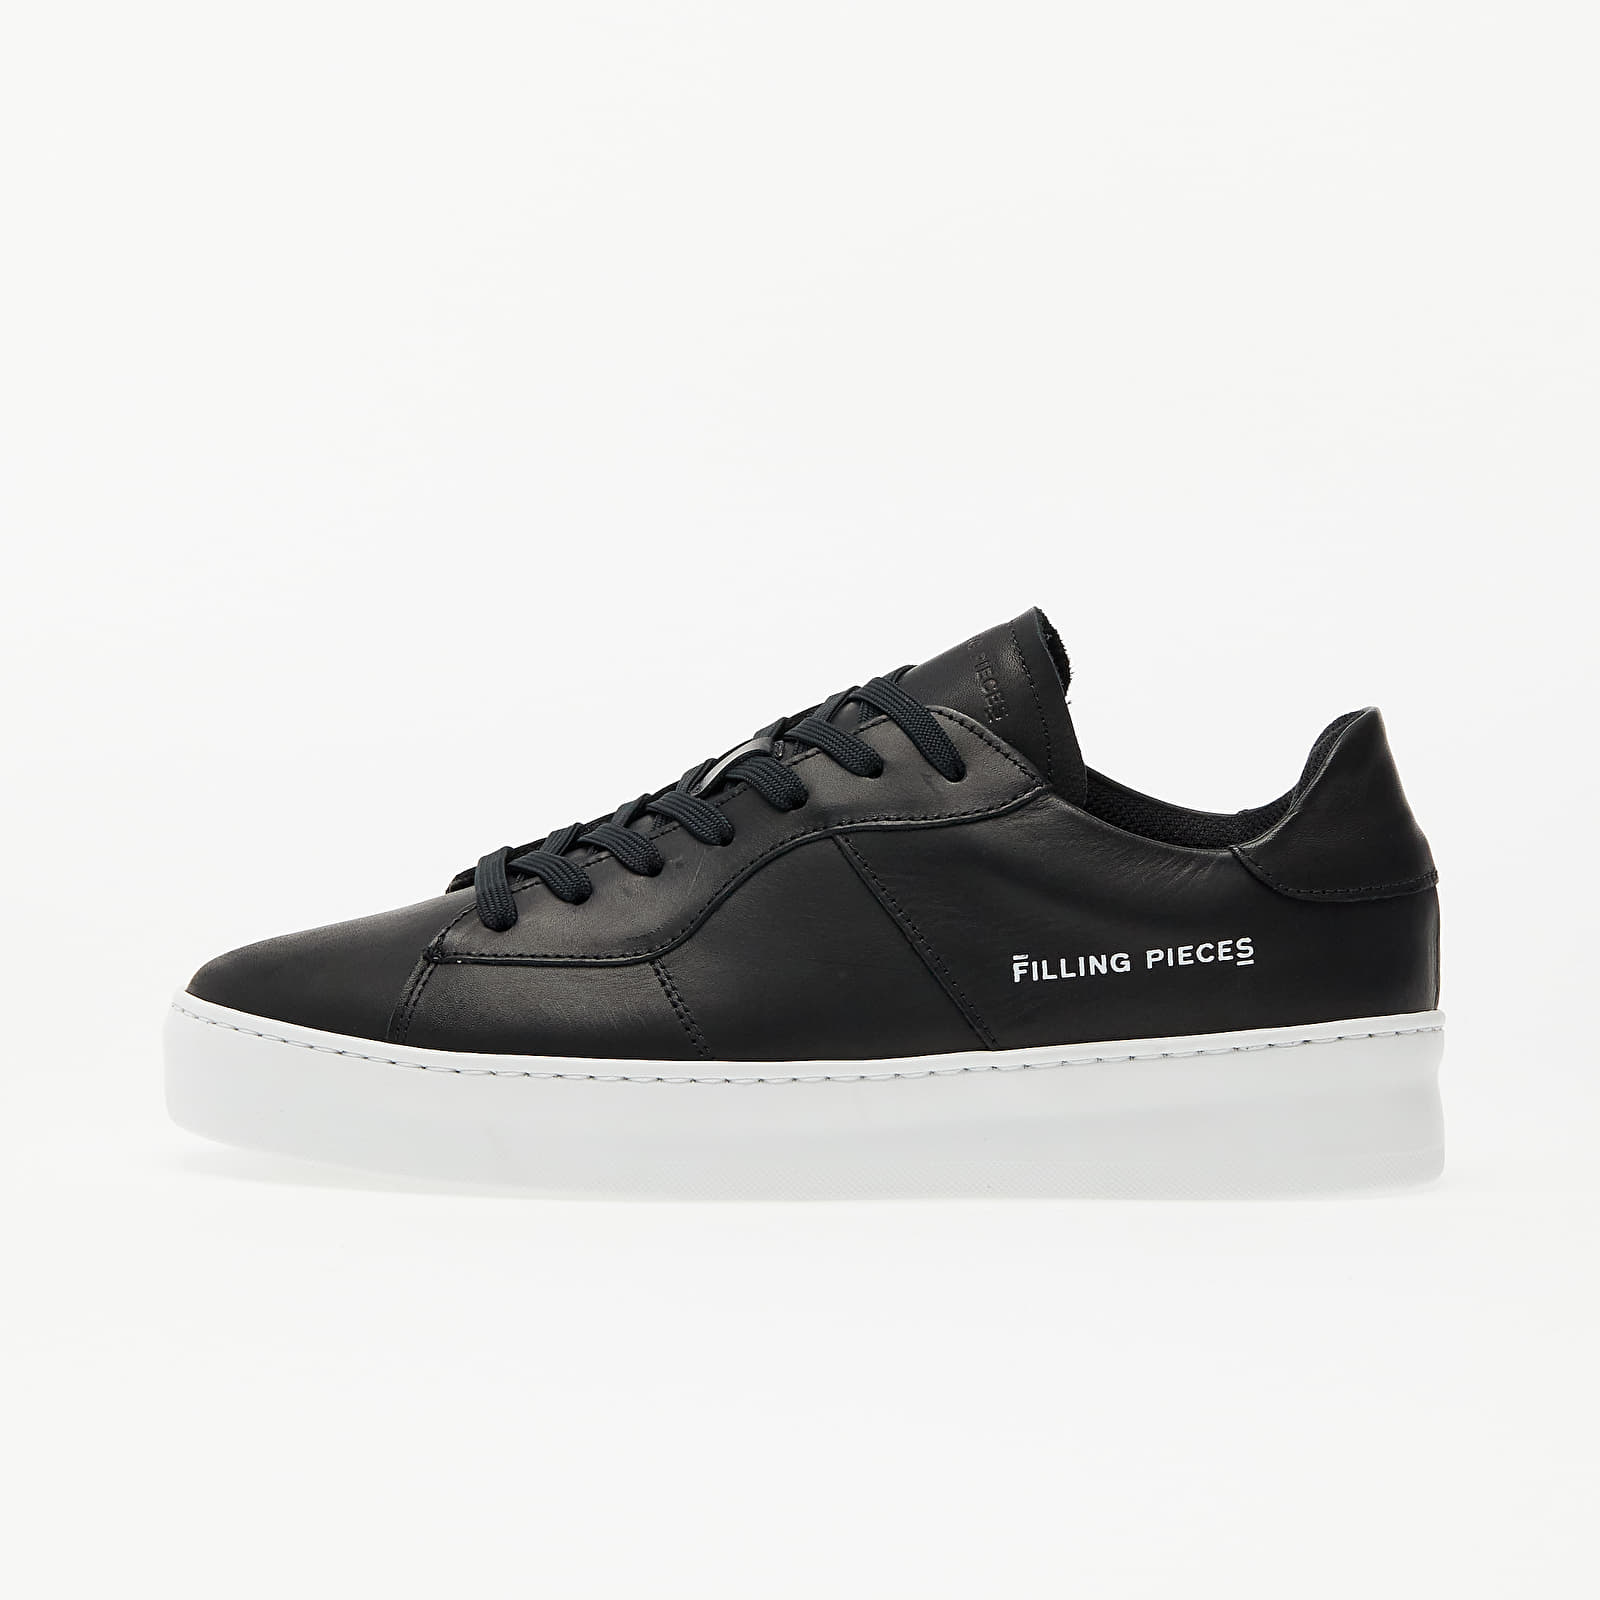 Men's shoes Filling Pieces Light Plain Court Black/ Black